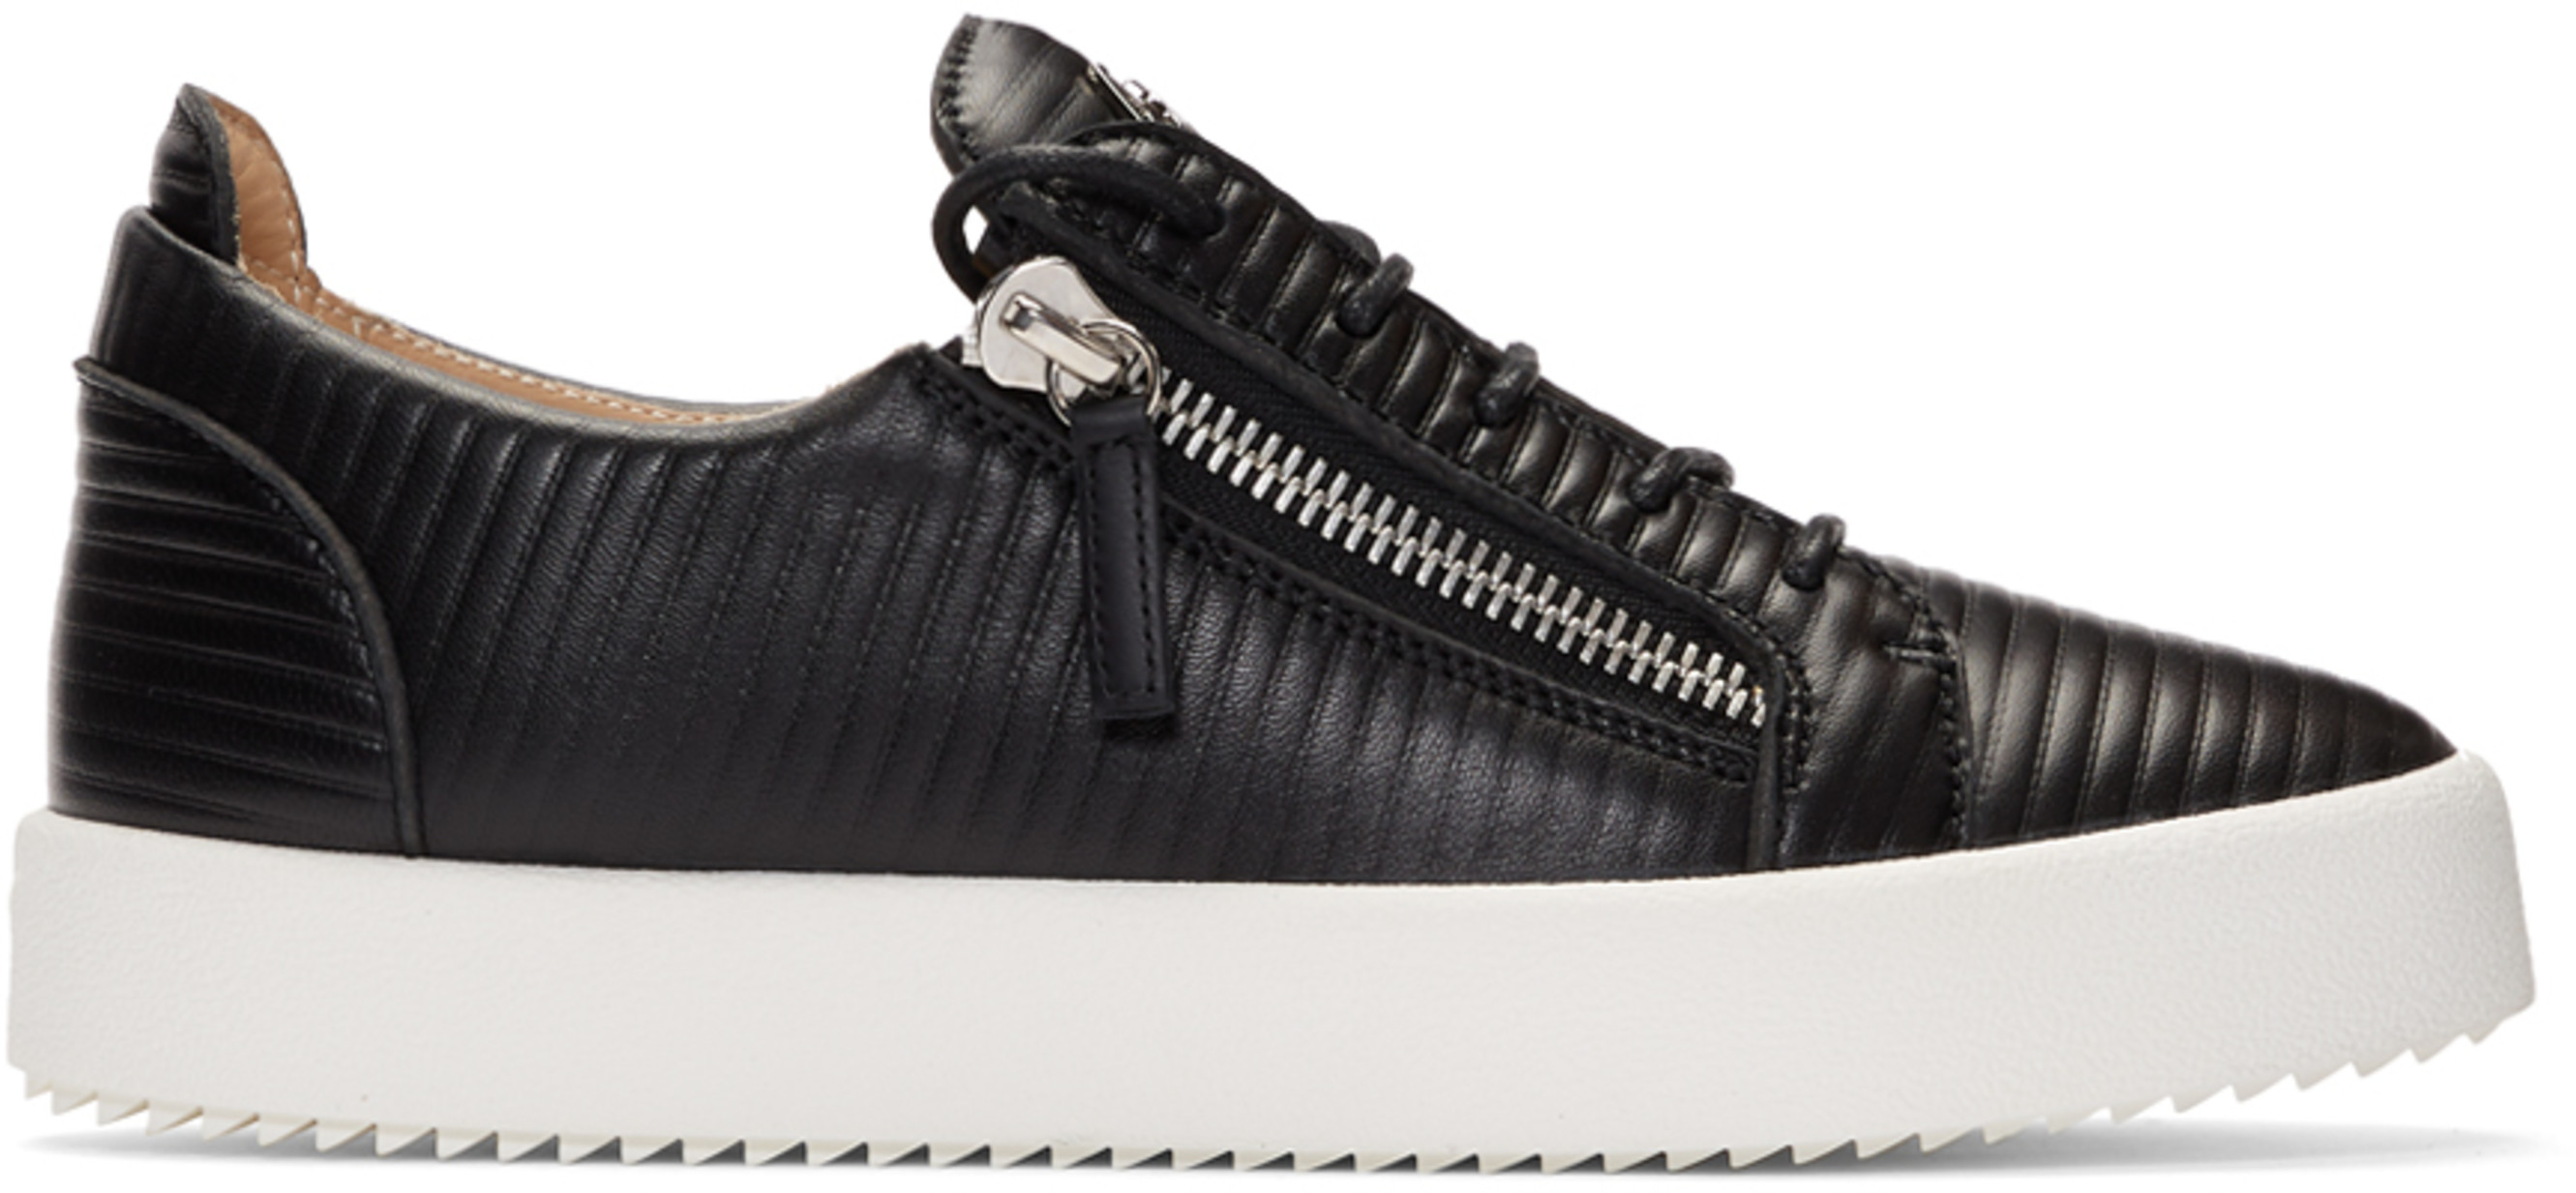 006aaa8a6f3af Giuseppe Zanotti Collection pour Hommes